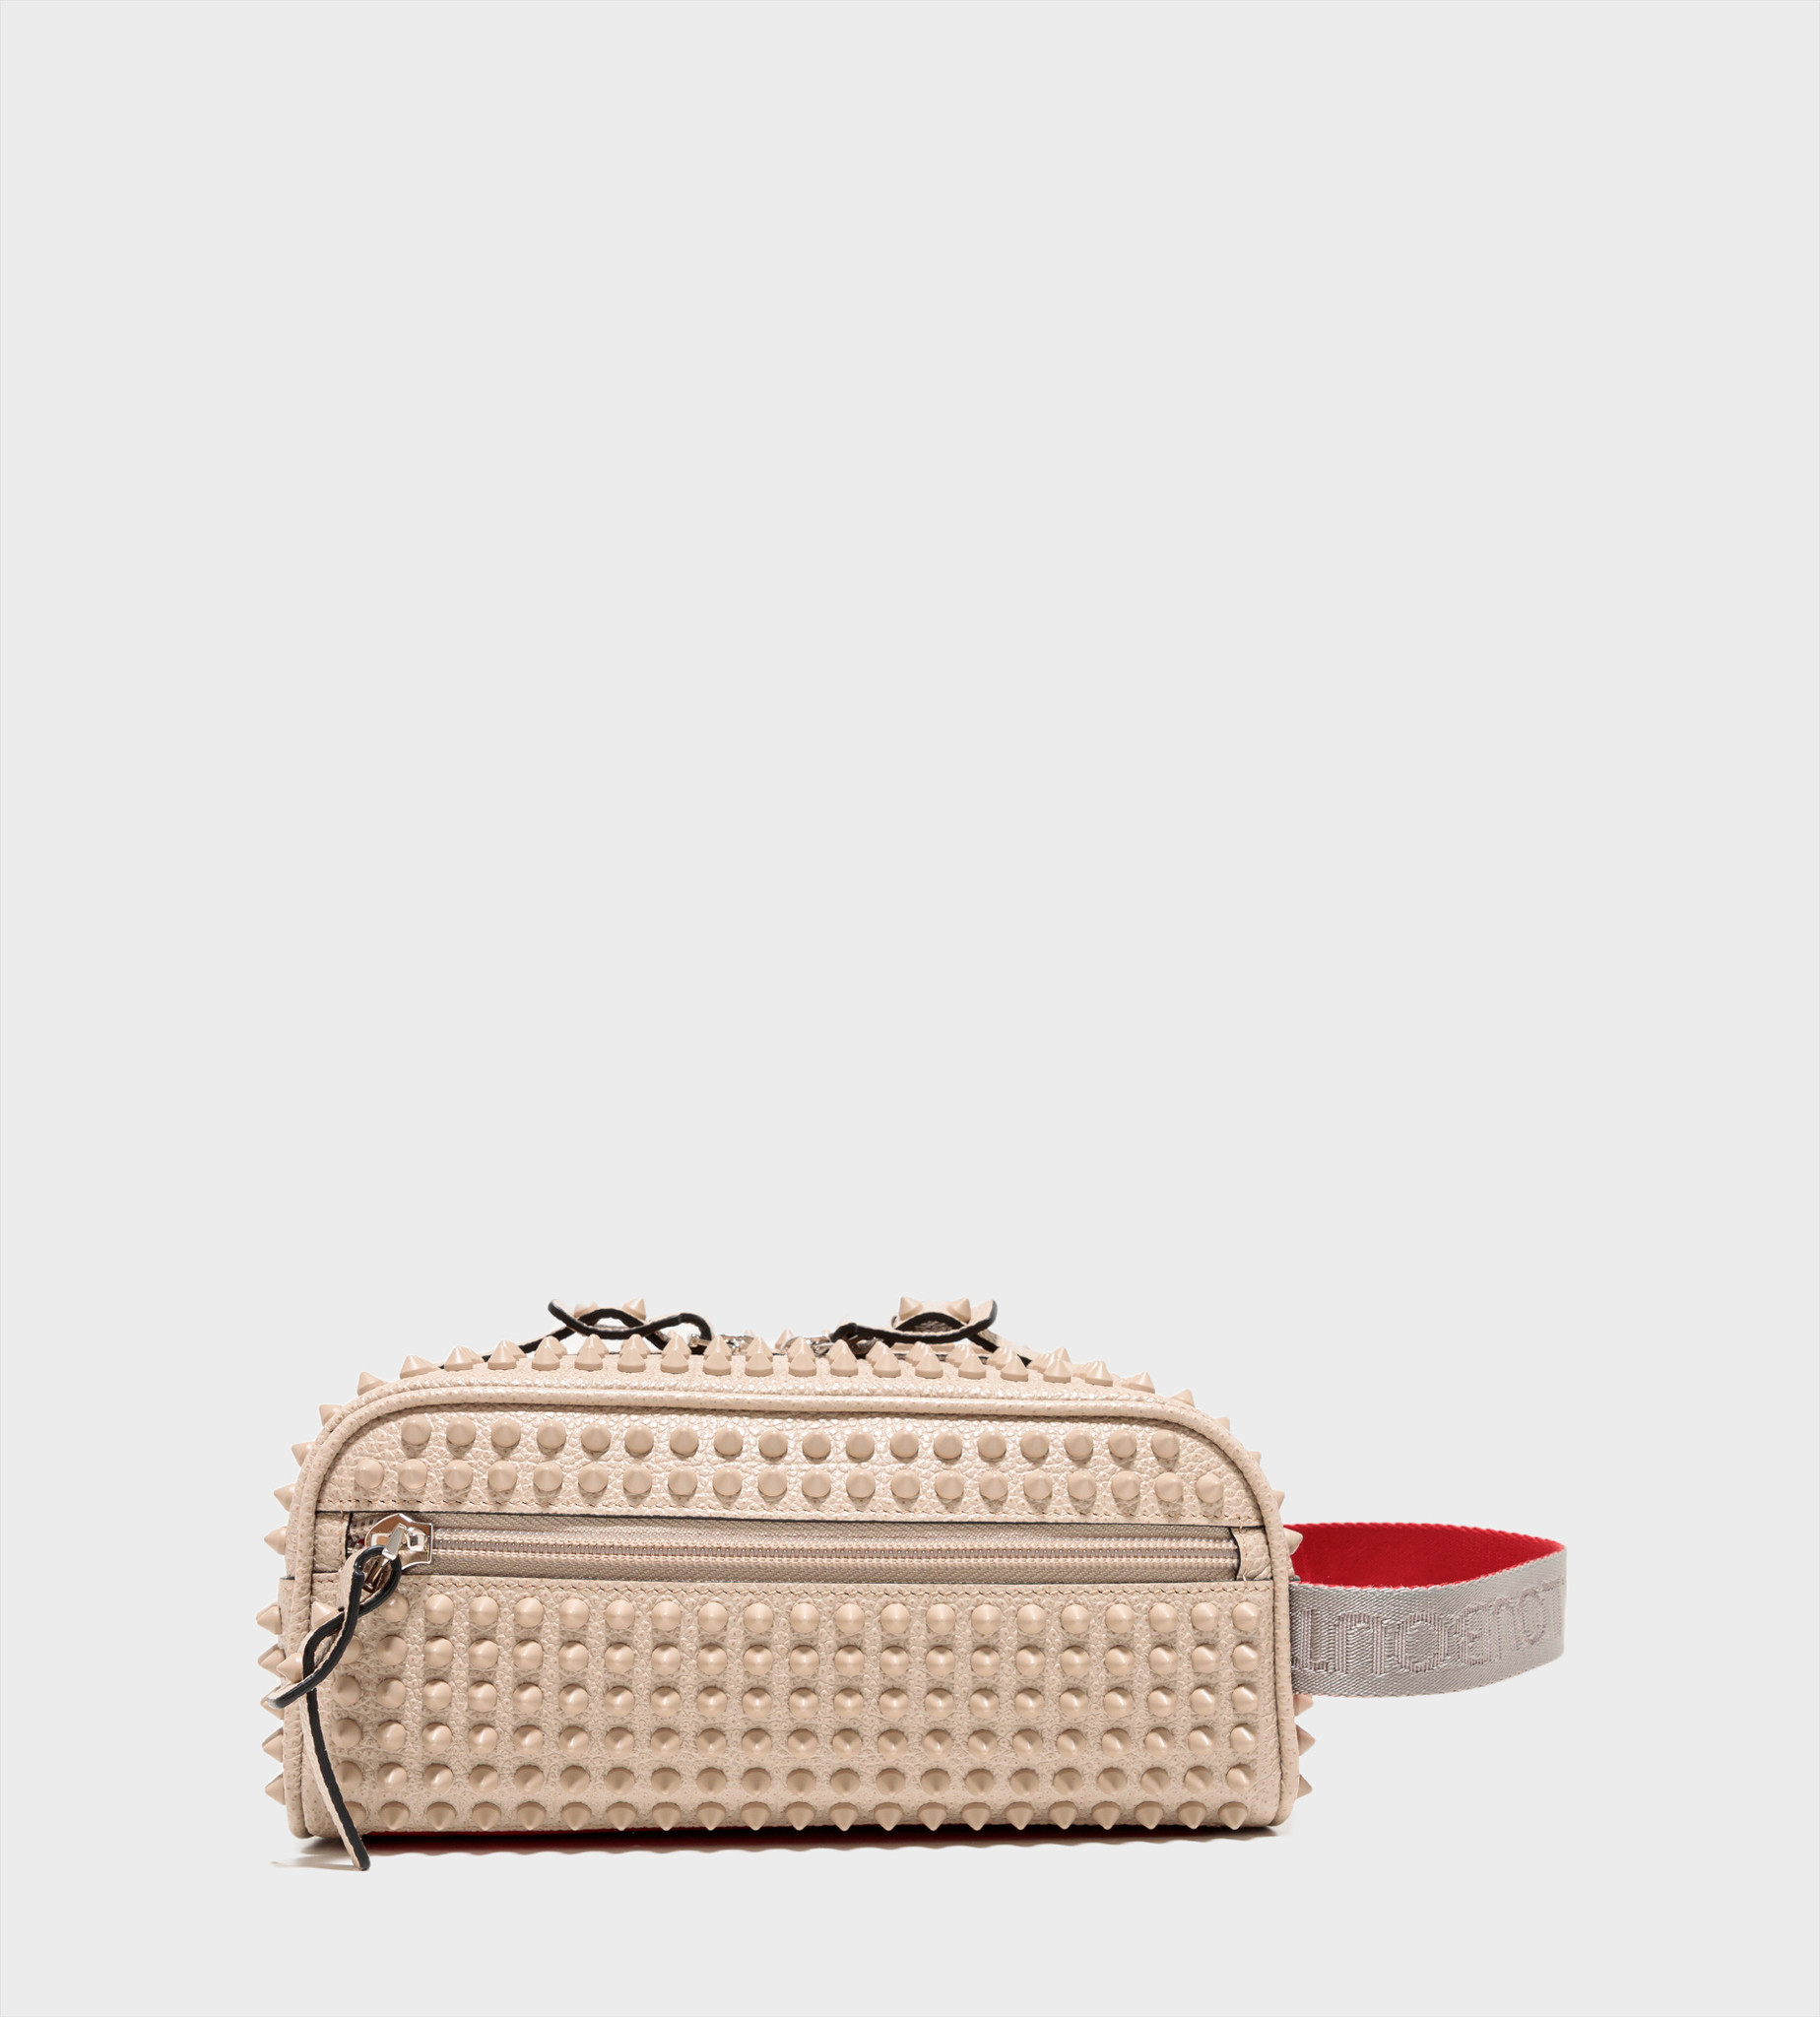 CHRISTIAN LOUBOUTIN Blaster Spikes Toiletry Bag Calce